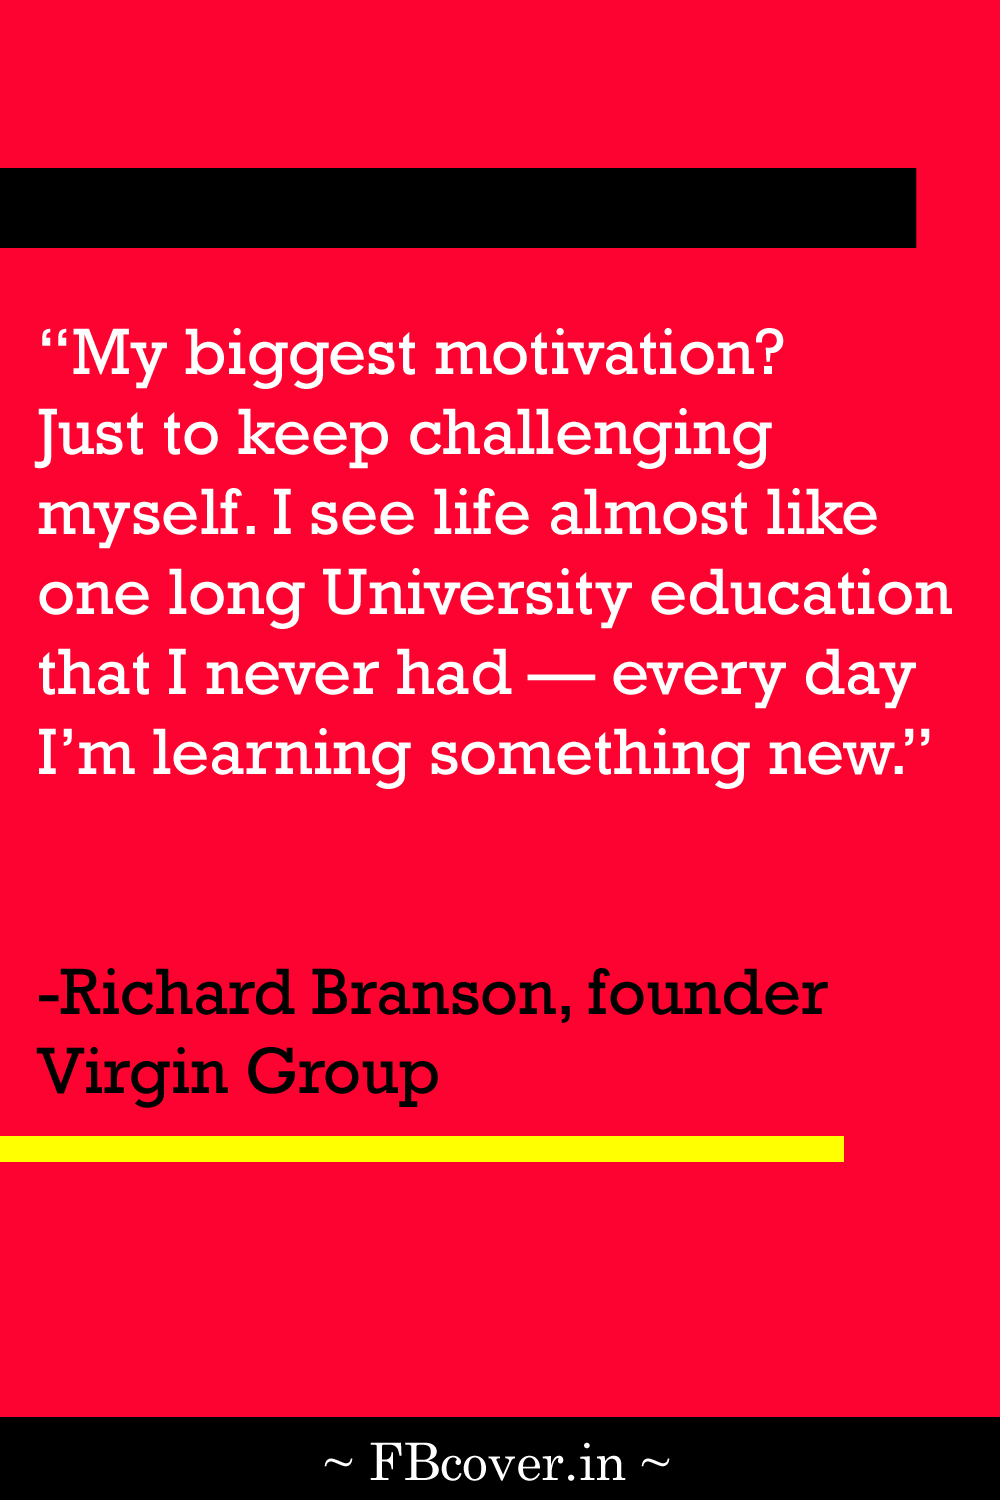 """Richard Branson Quotes: """"My biggest motivation? Just to keep challenging myself. I see life almost like one long university education that I never had."""""""